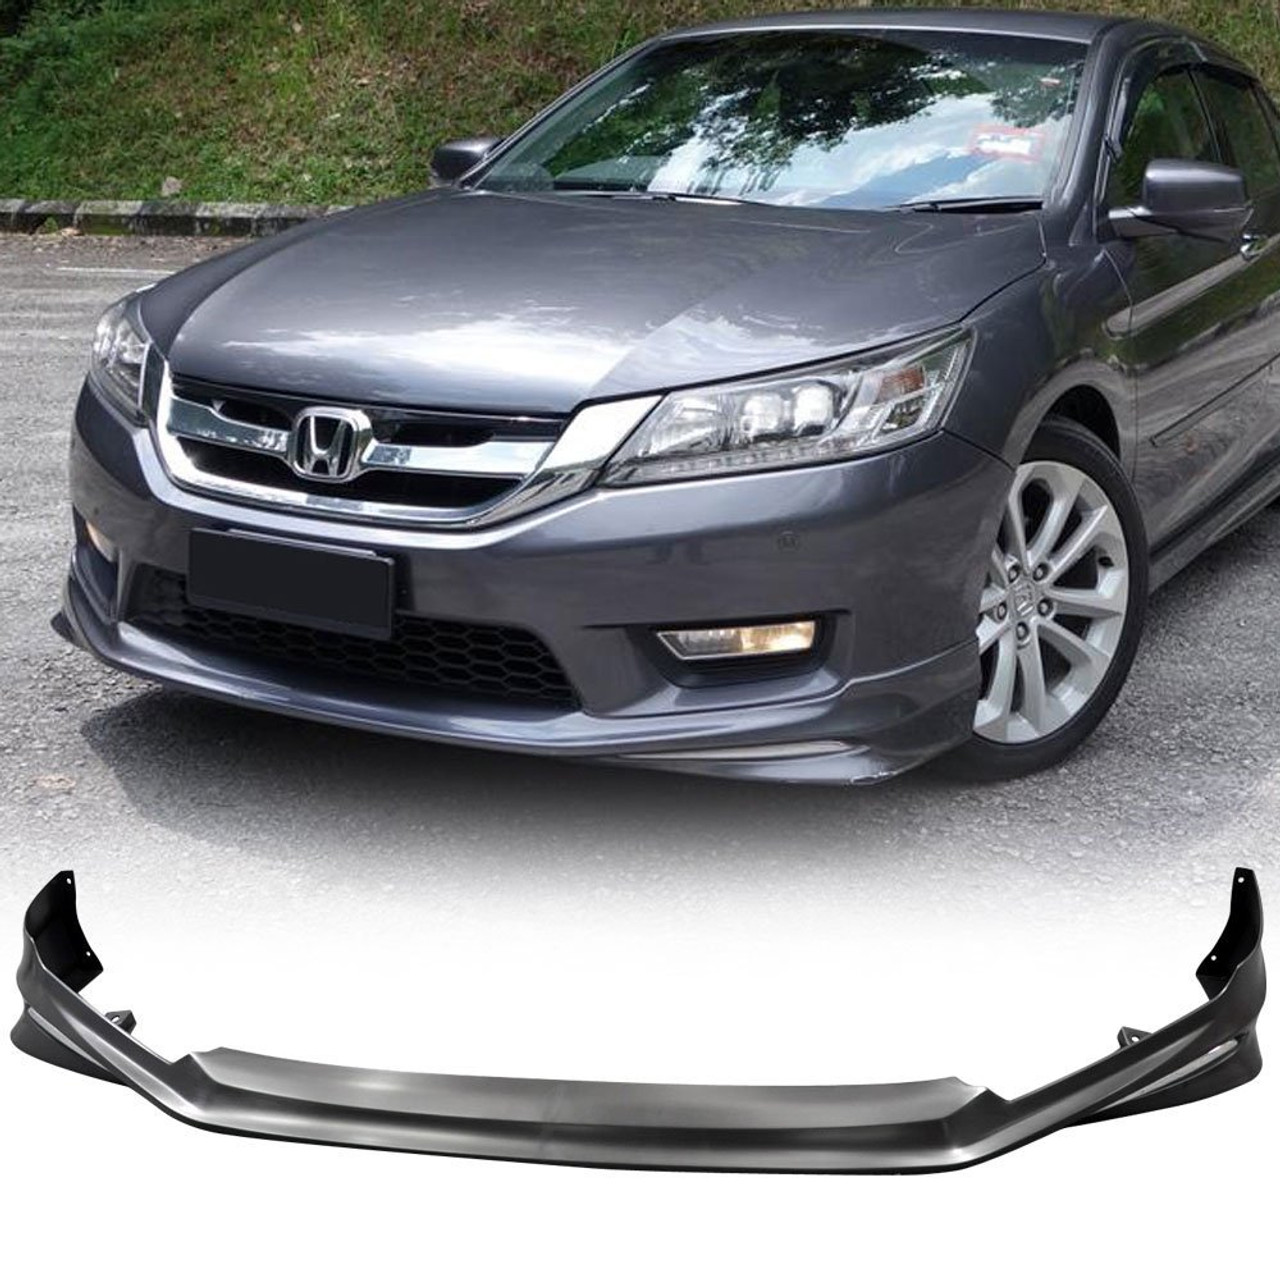 hight resolution of 1998 honda accord front emblem style